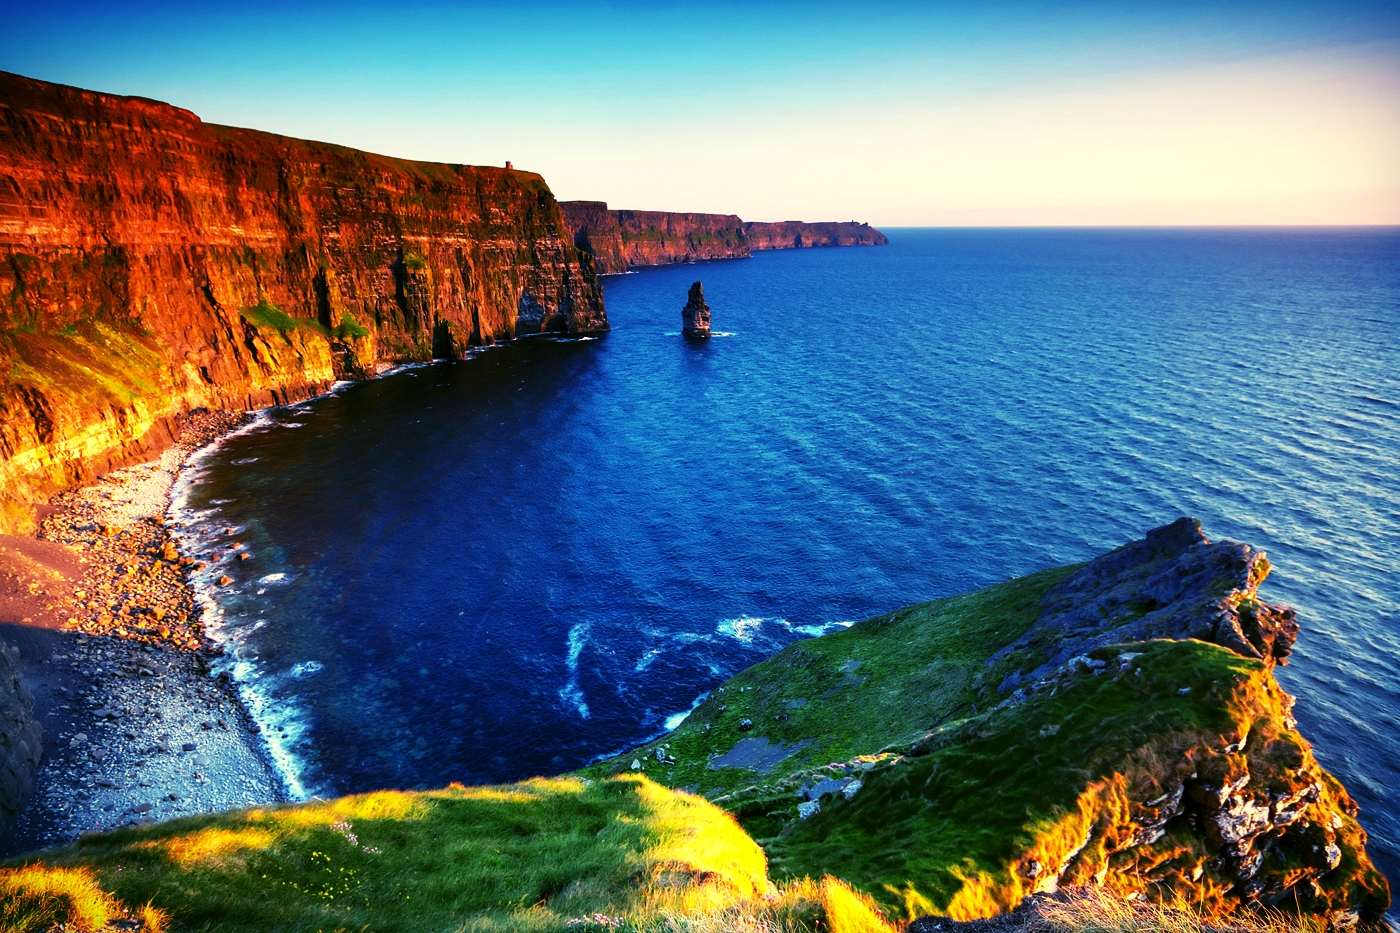 the-cliffs-of-moher-is-a-place-of-ethereal-beauty_20649525006_o.jpg